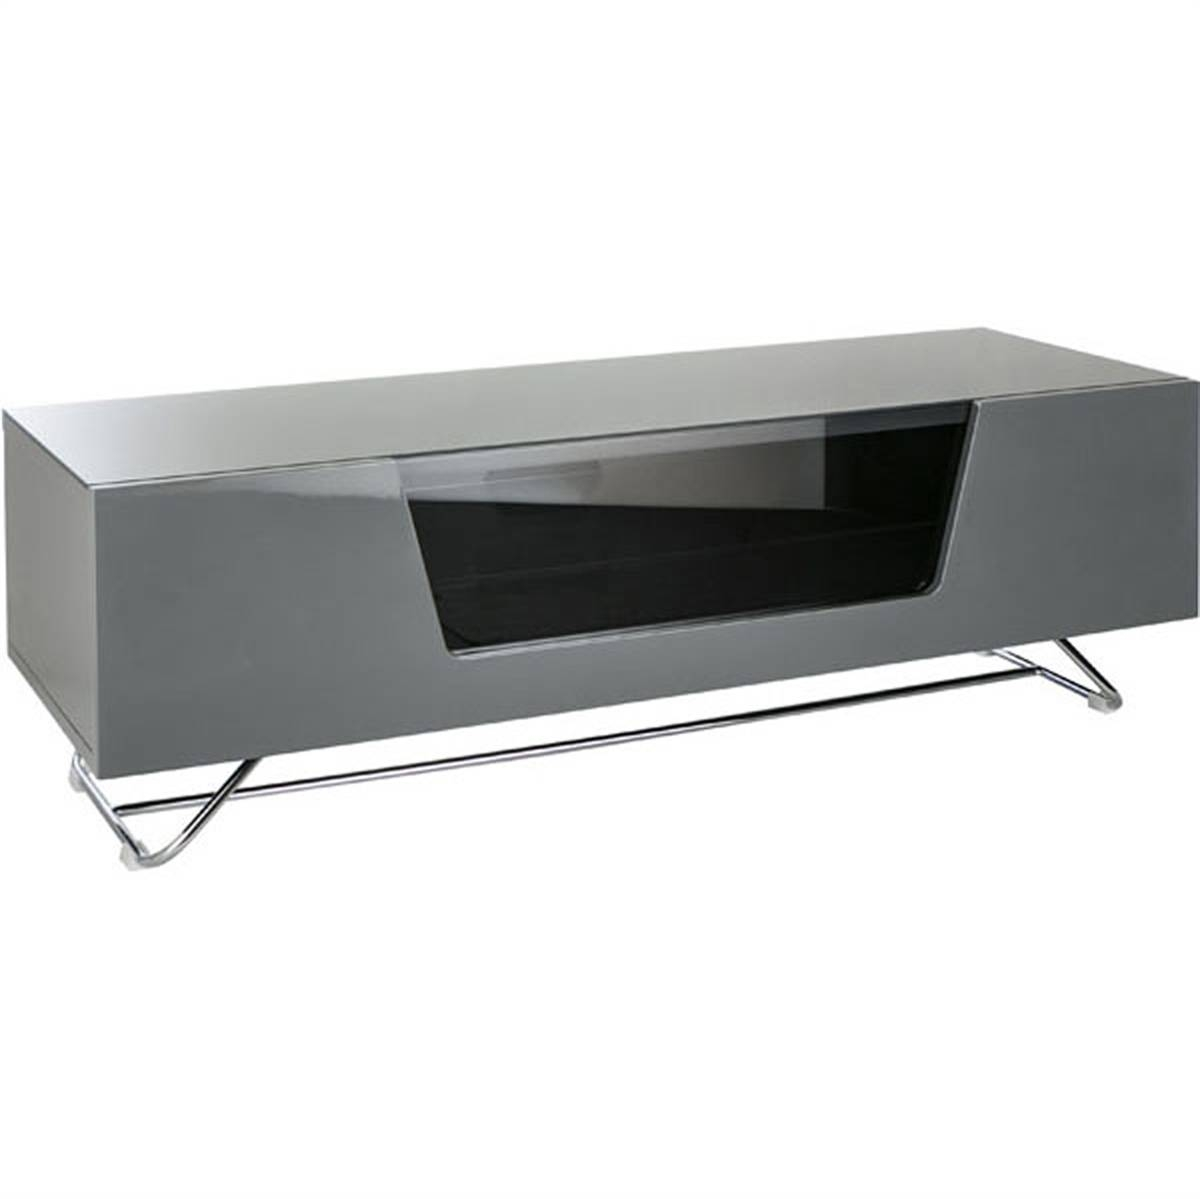 Alphason New Alpha Chromium Tv Cabinet 1200 Grey Tv Stand / Tv in Grey Tv Stands (Image 1 of 15)